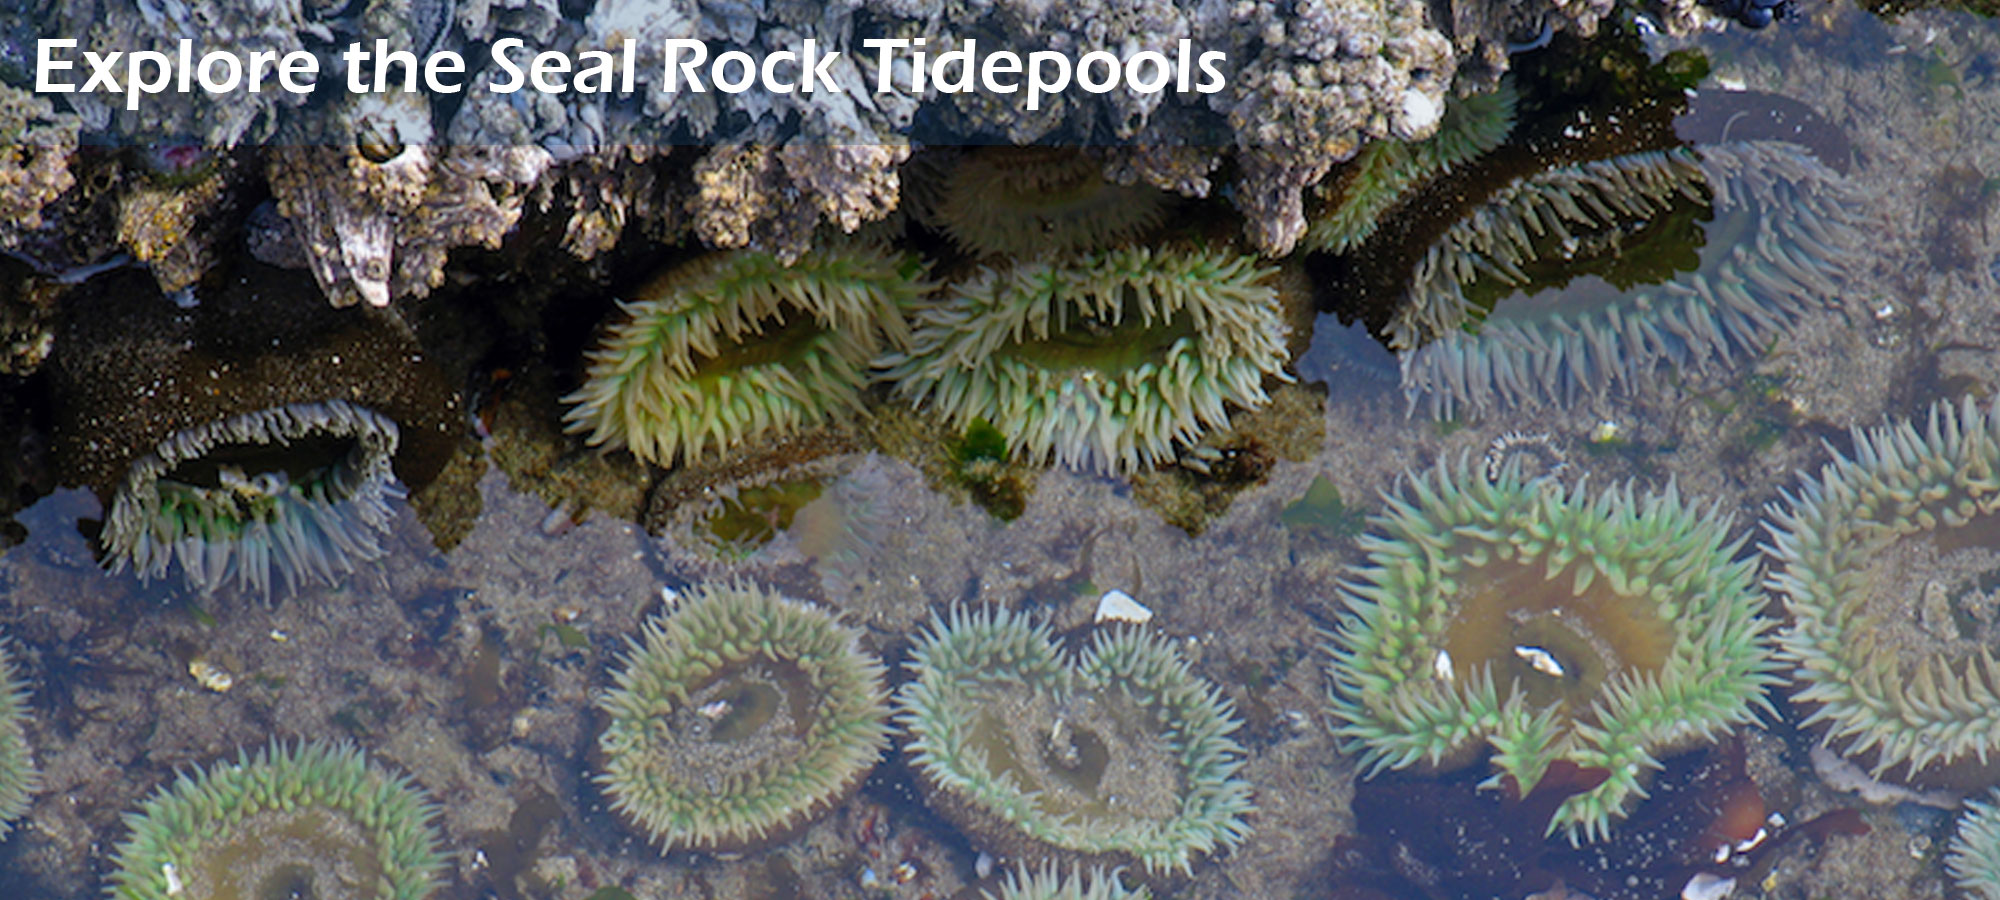 Explore the Seal Rock Tidepools